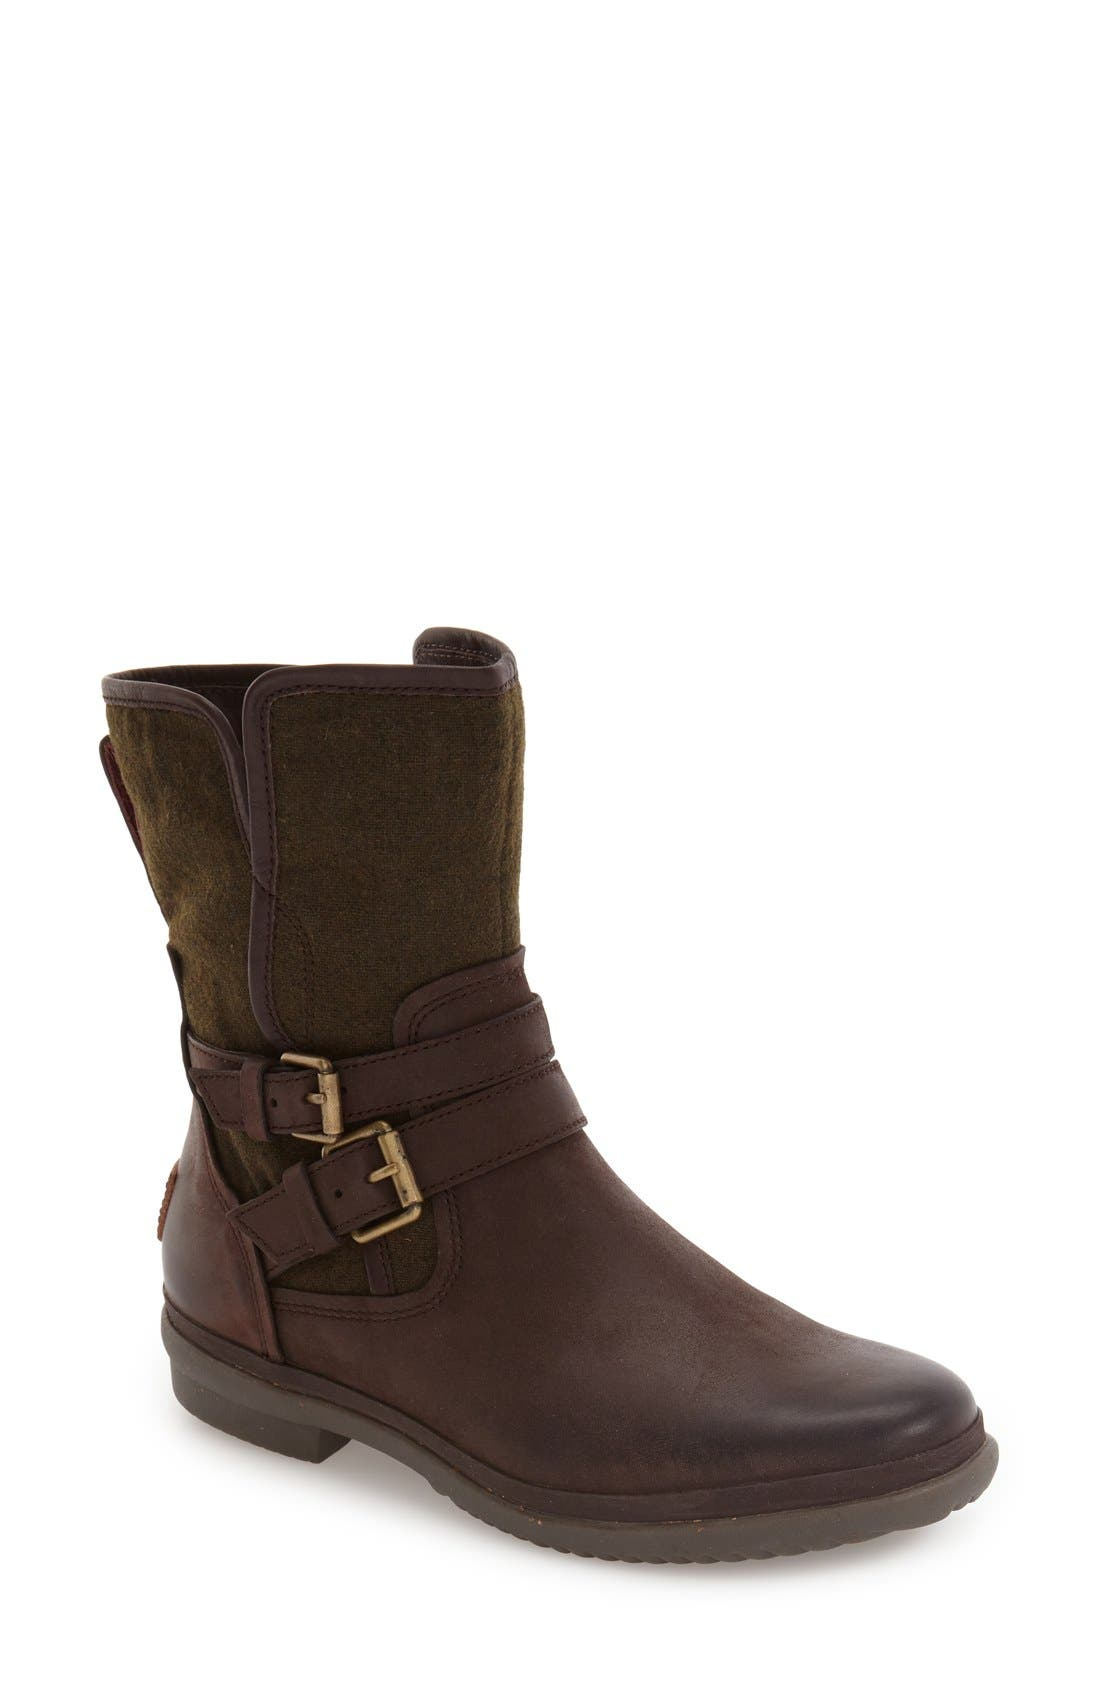 UGG<SUP>®</SUP> Simmens Waterproof Leather Boot, Main, color, STOUT WOOL